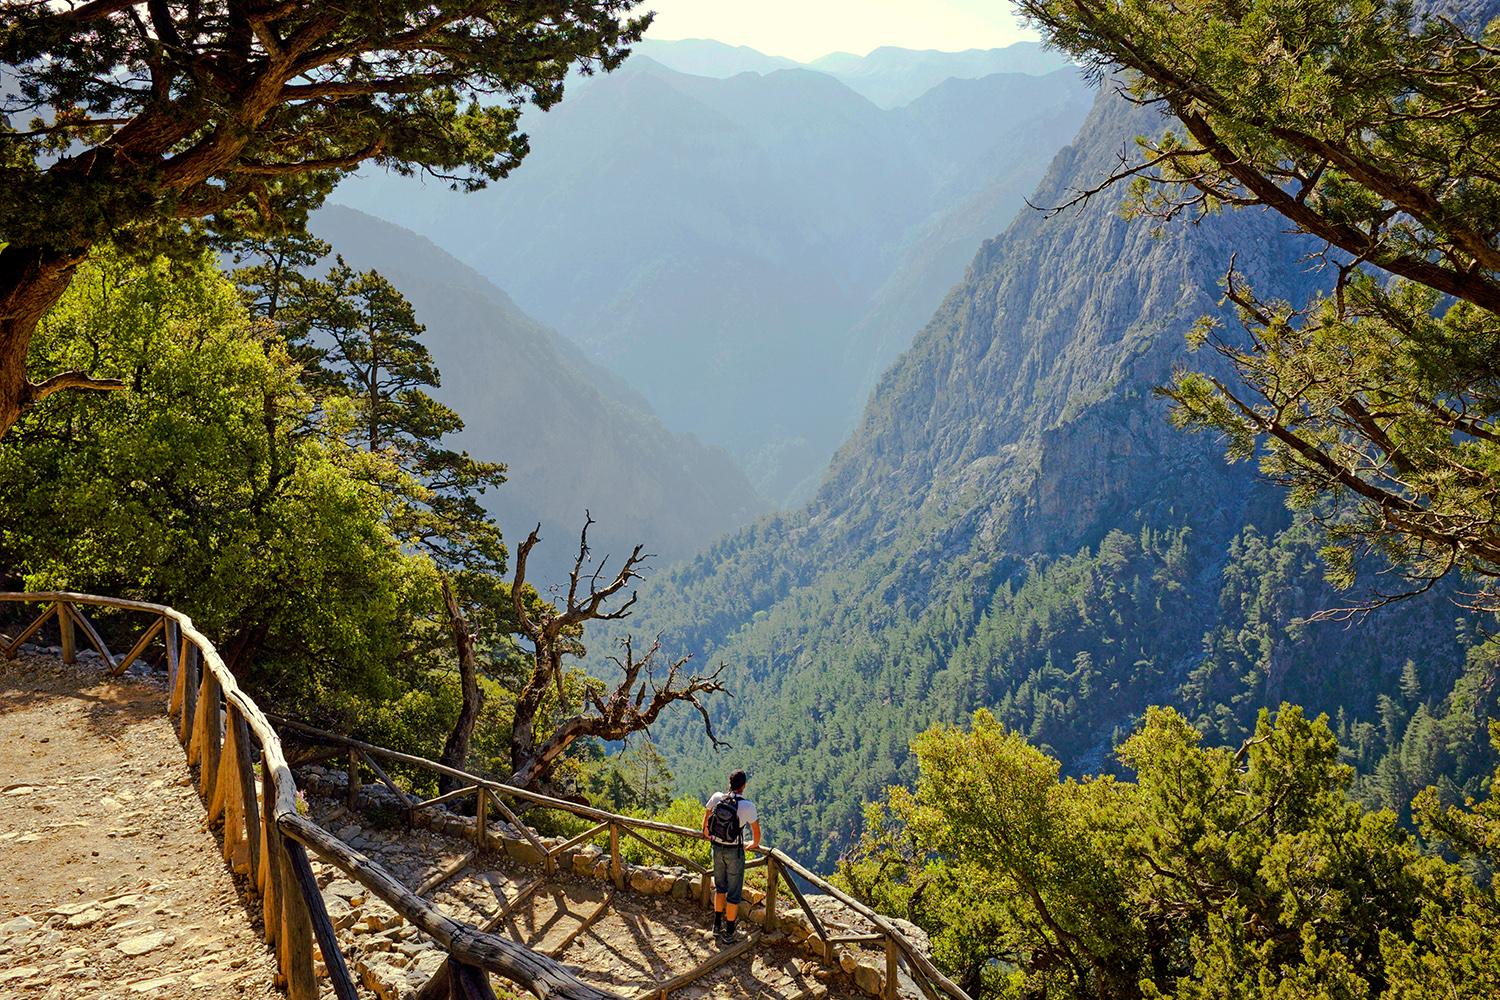 A short guide to Samaria Gorge